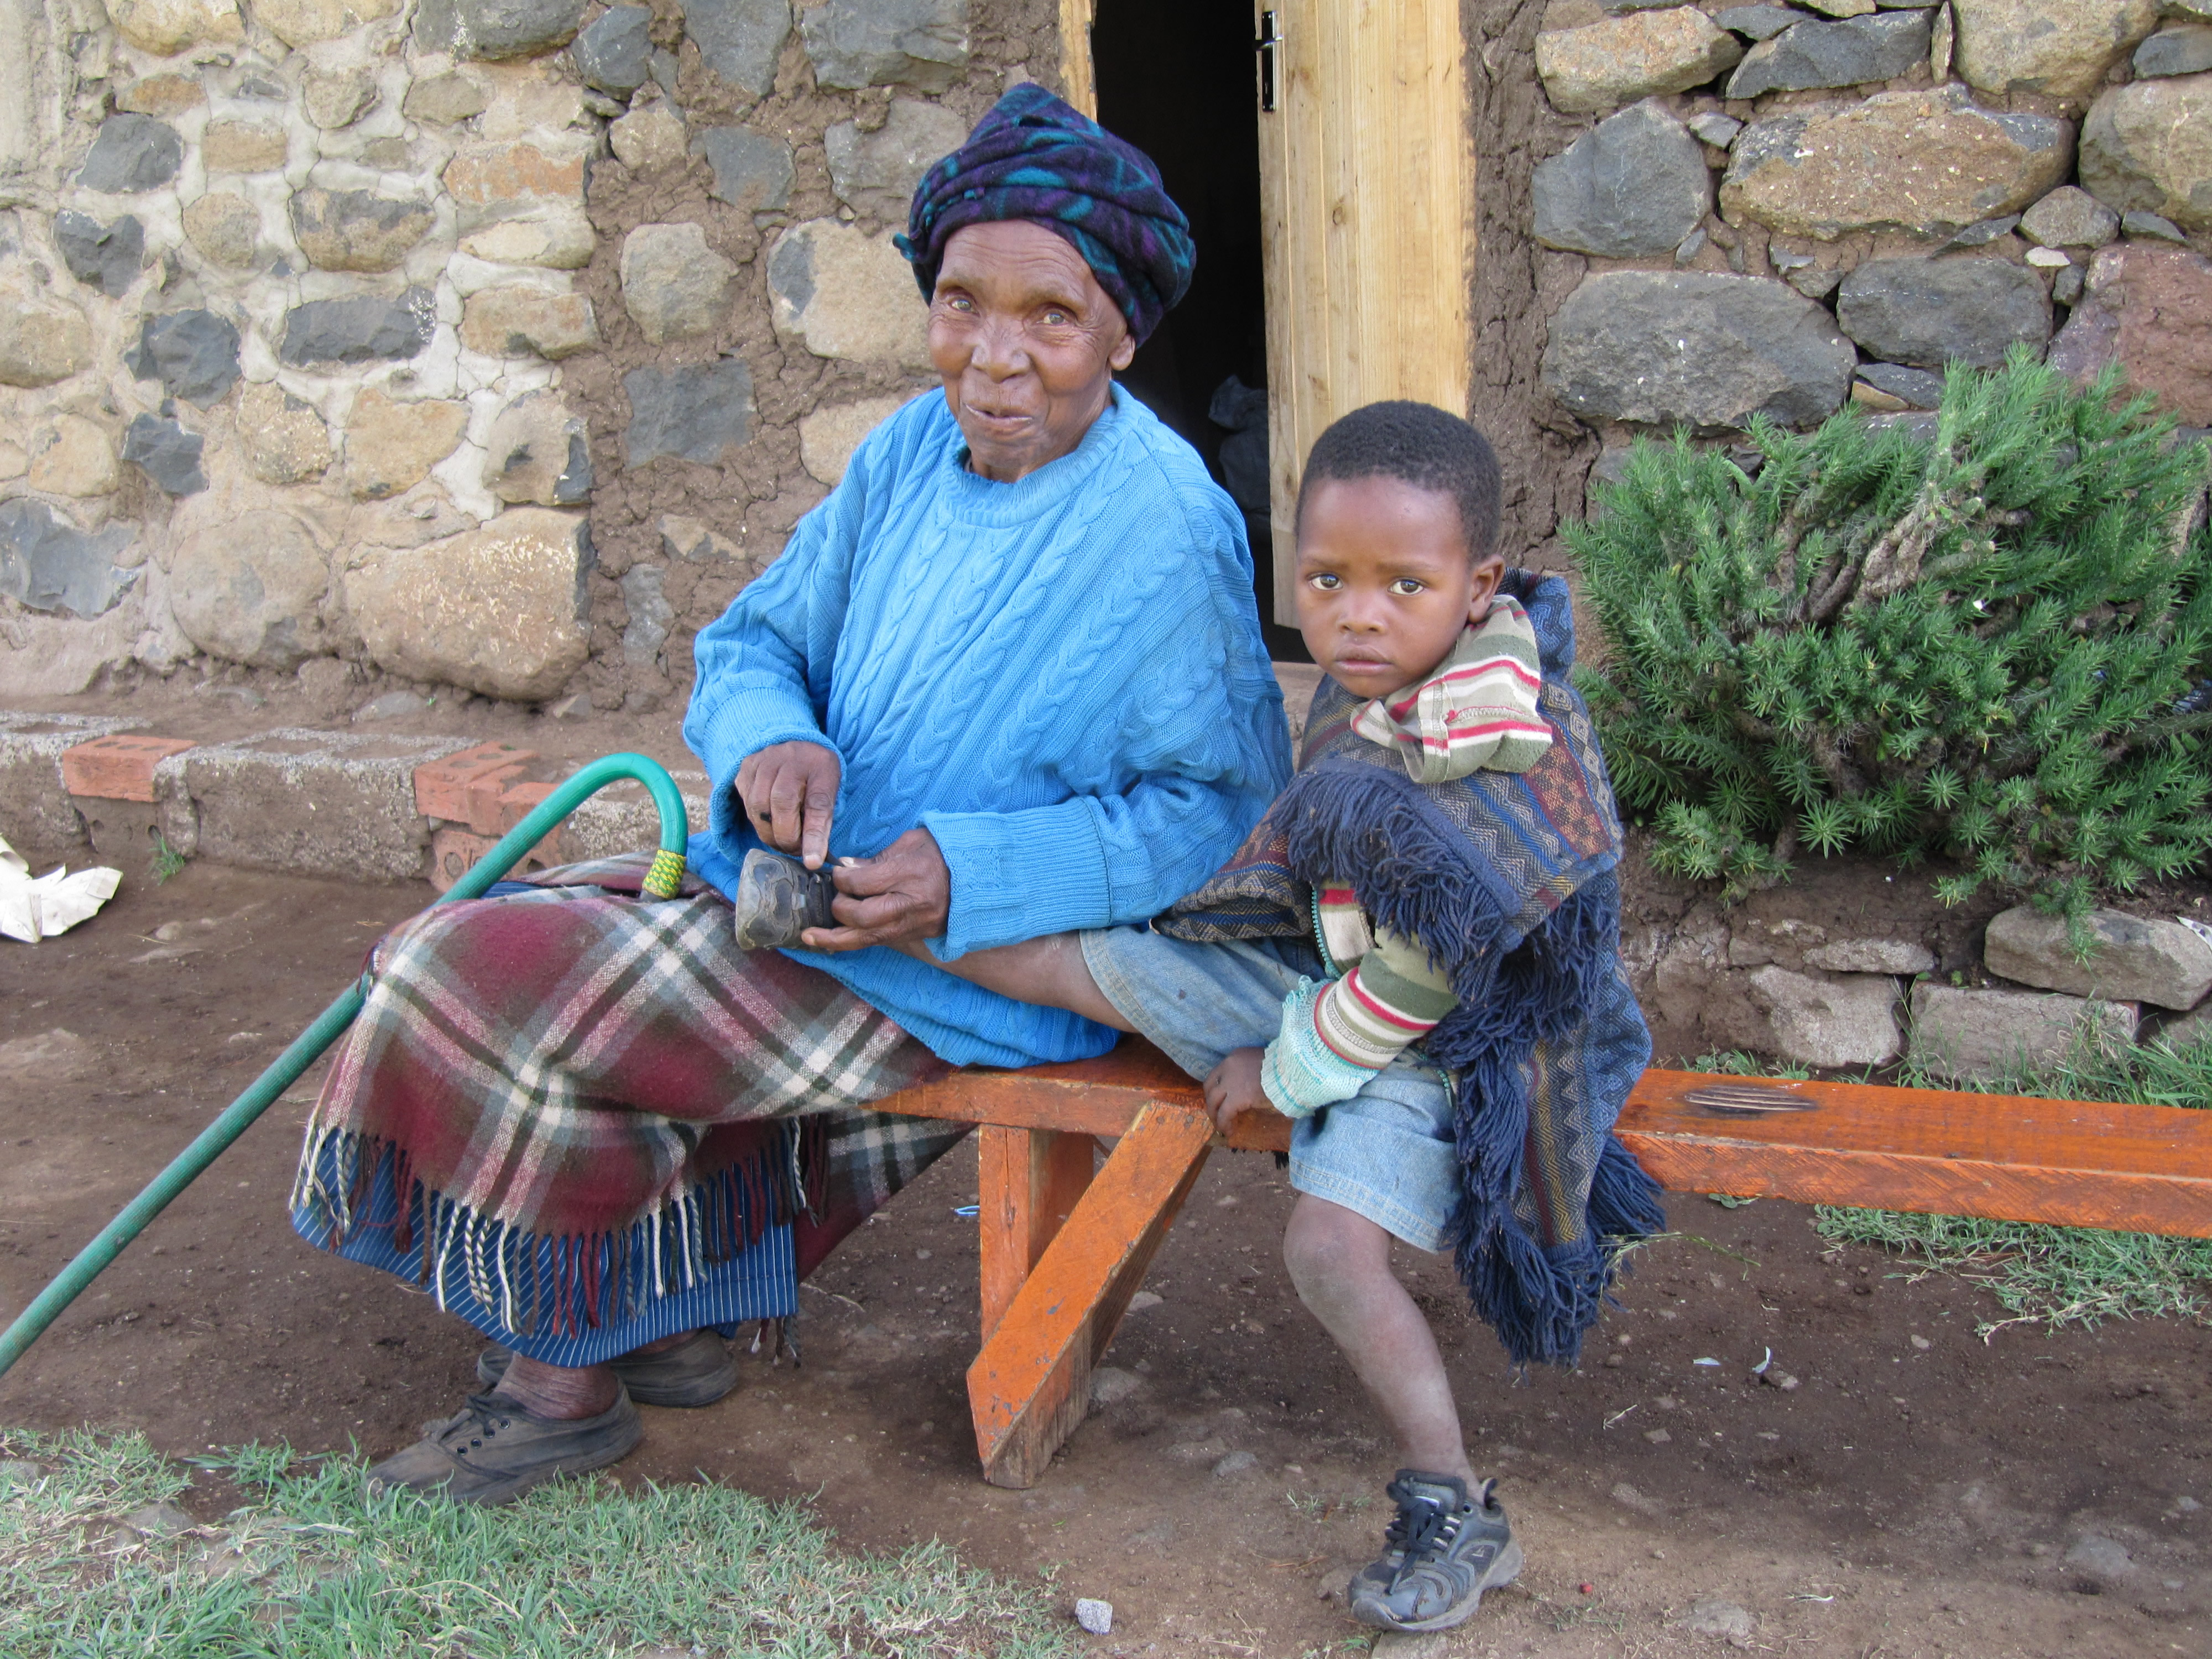 Grandma and grandson tying shoelaces in Lesotho